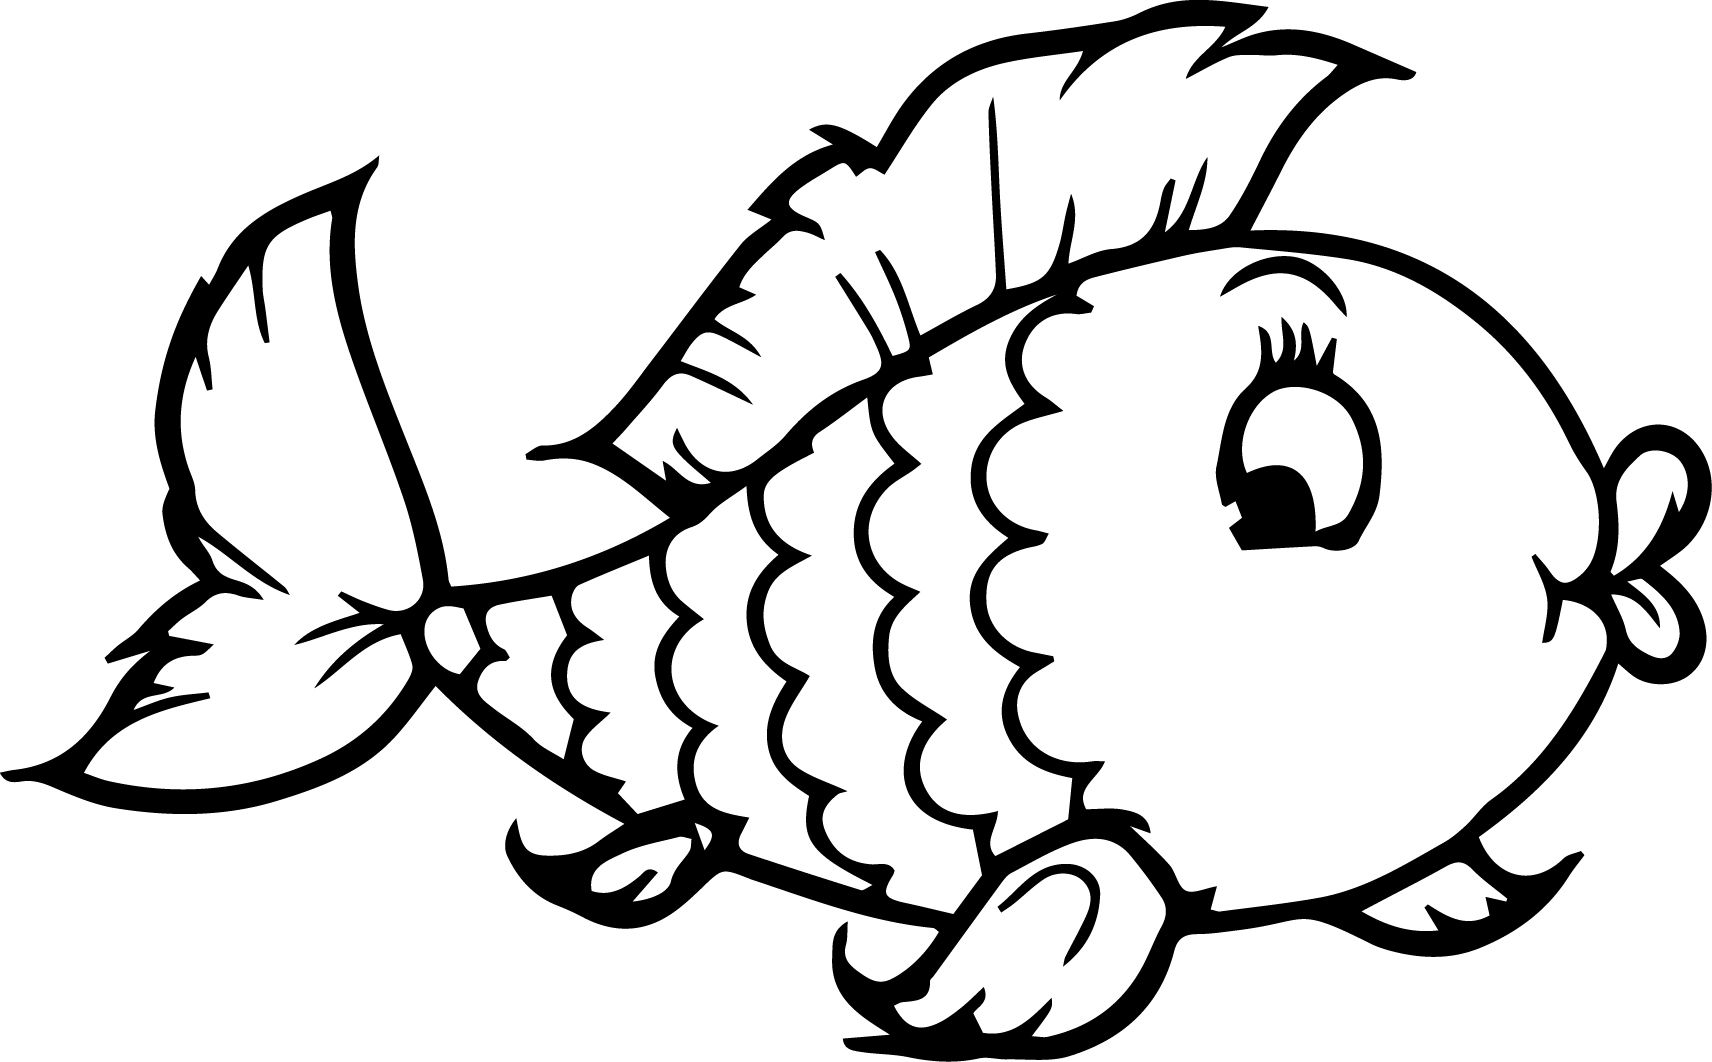 Pin by Pradeep Gamage on Google | Fish coloring page ...